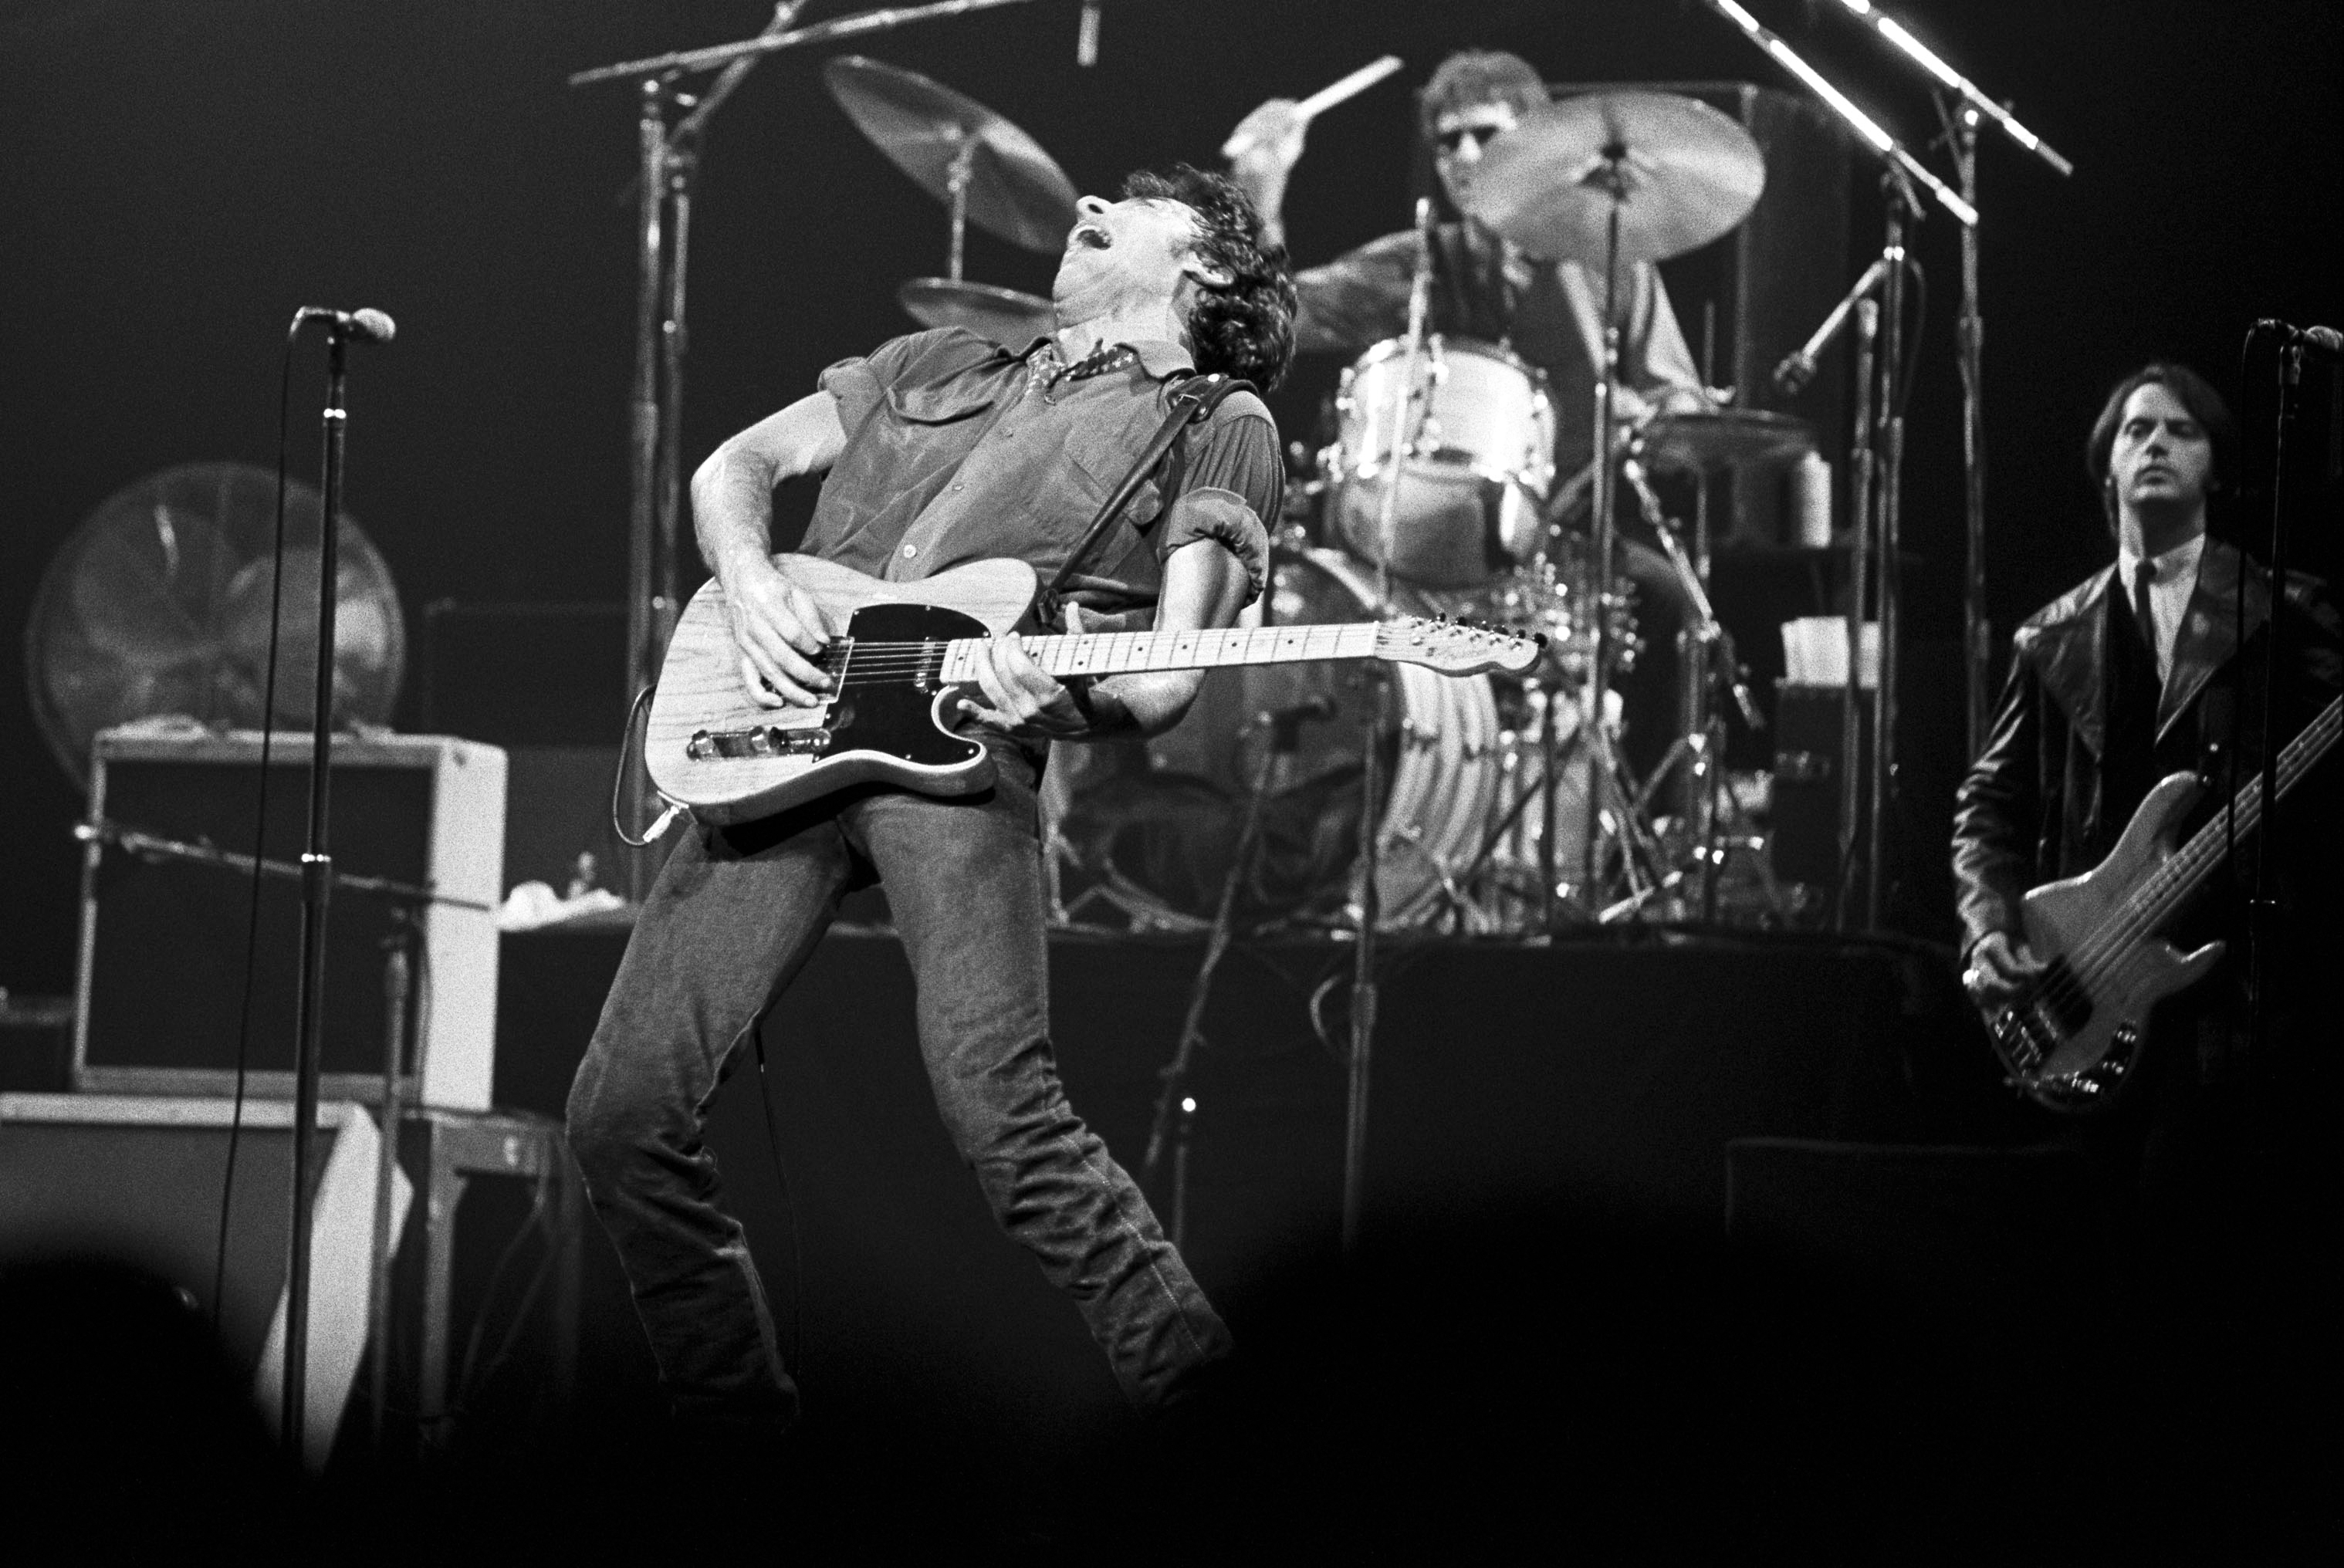 Bruce Springsteen's 'Darkness on the Edge of Town': 10 Things You Didn't Know